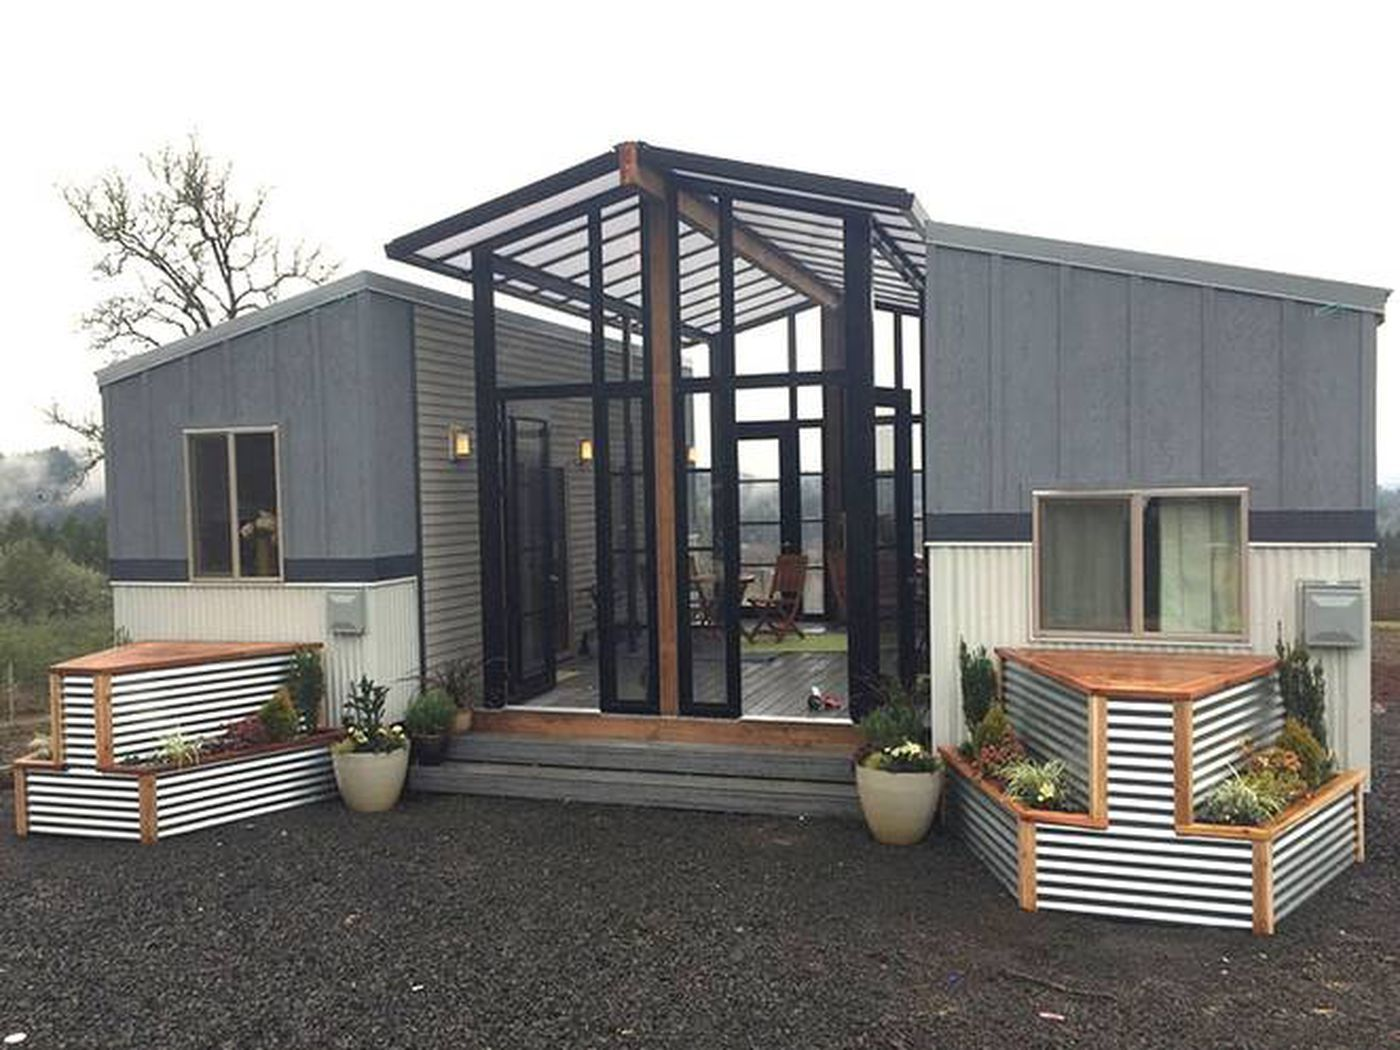 Outdoor Küche Vox Tiny Houses And Open Air Sunroom Combine Into One Family